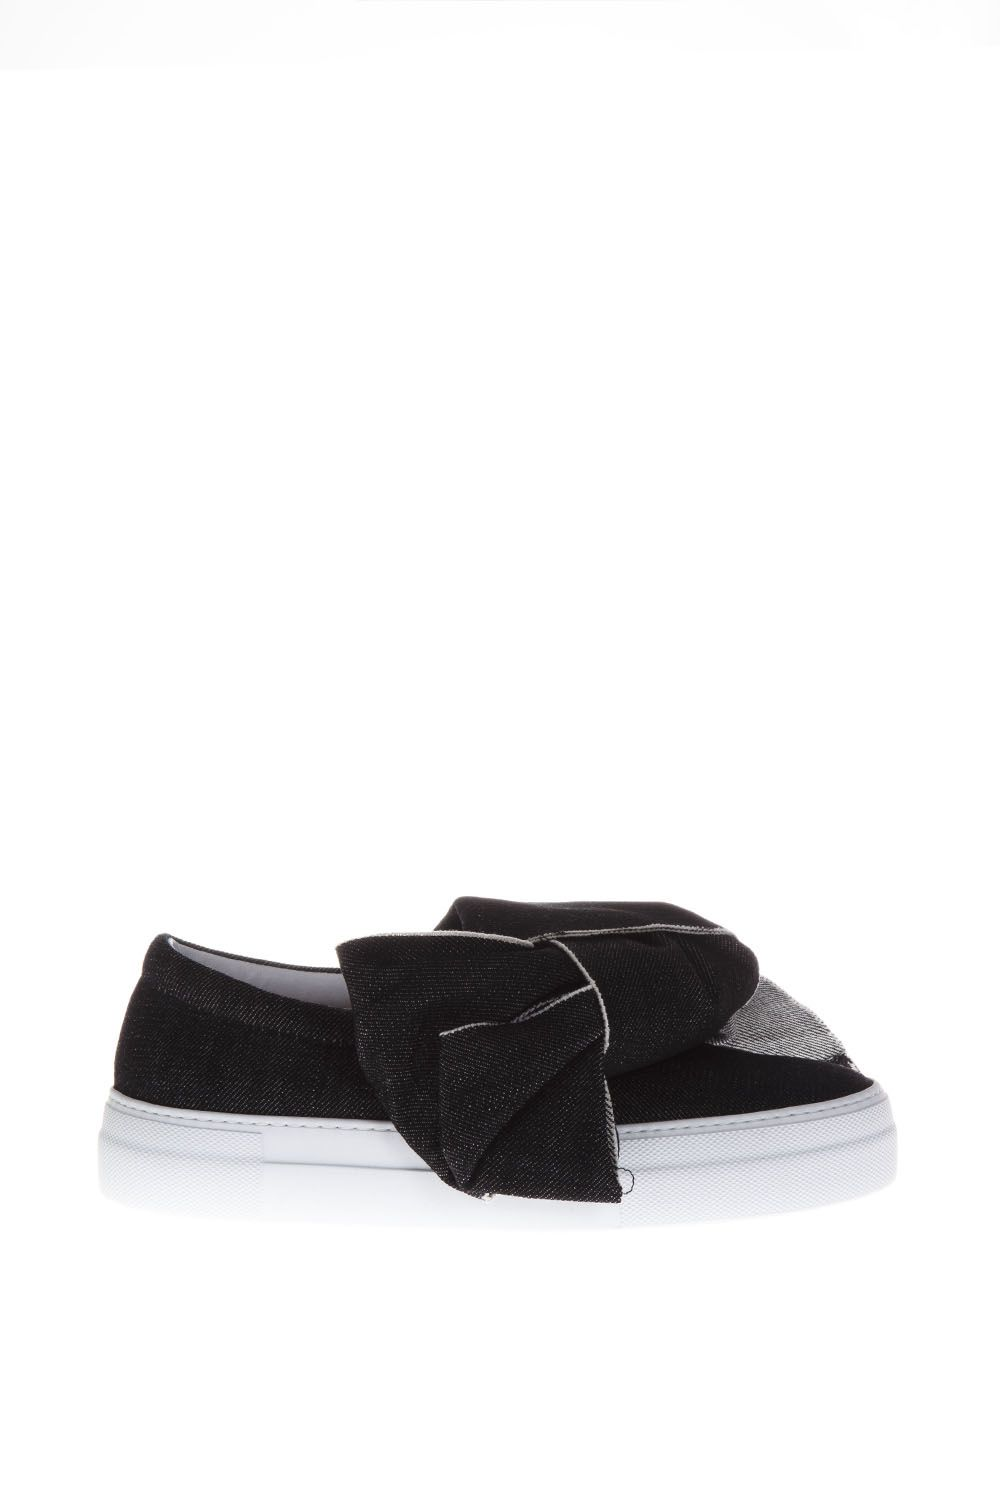 Joshua Sanders Denim Wash Slip-on Bow